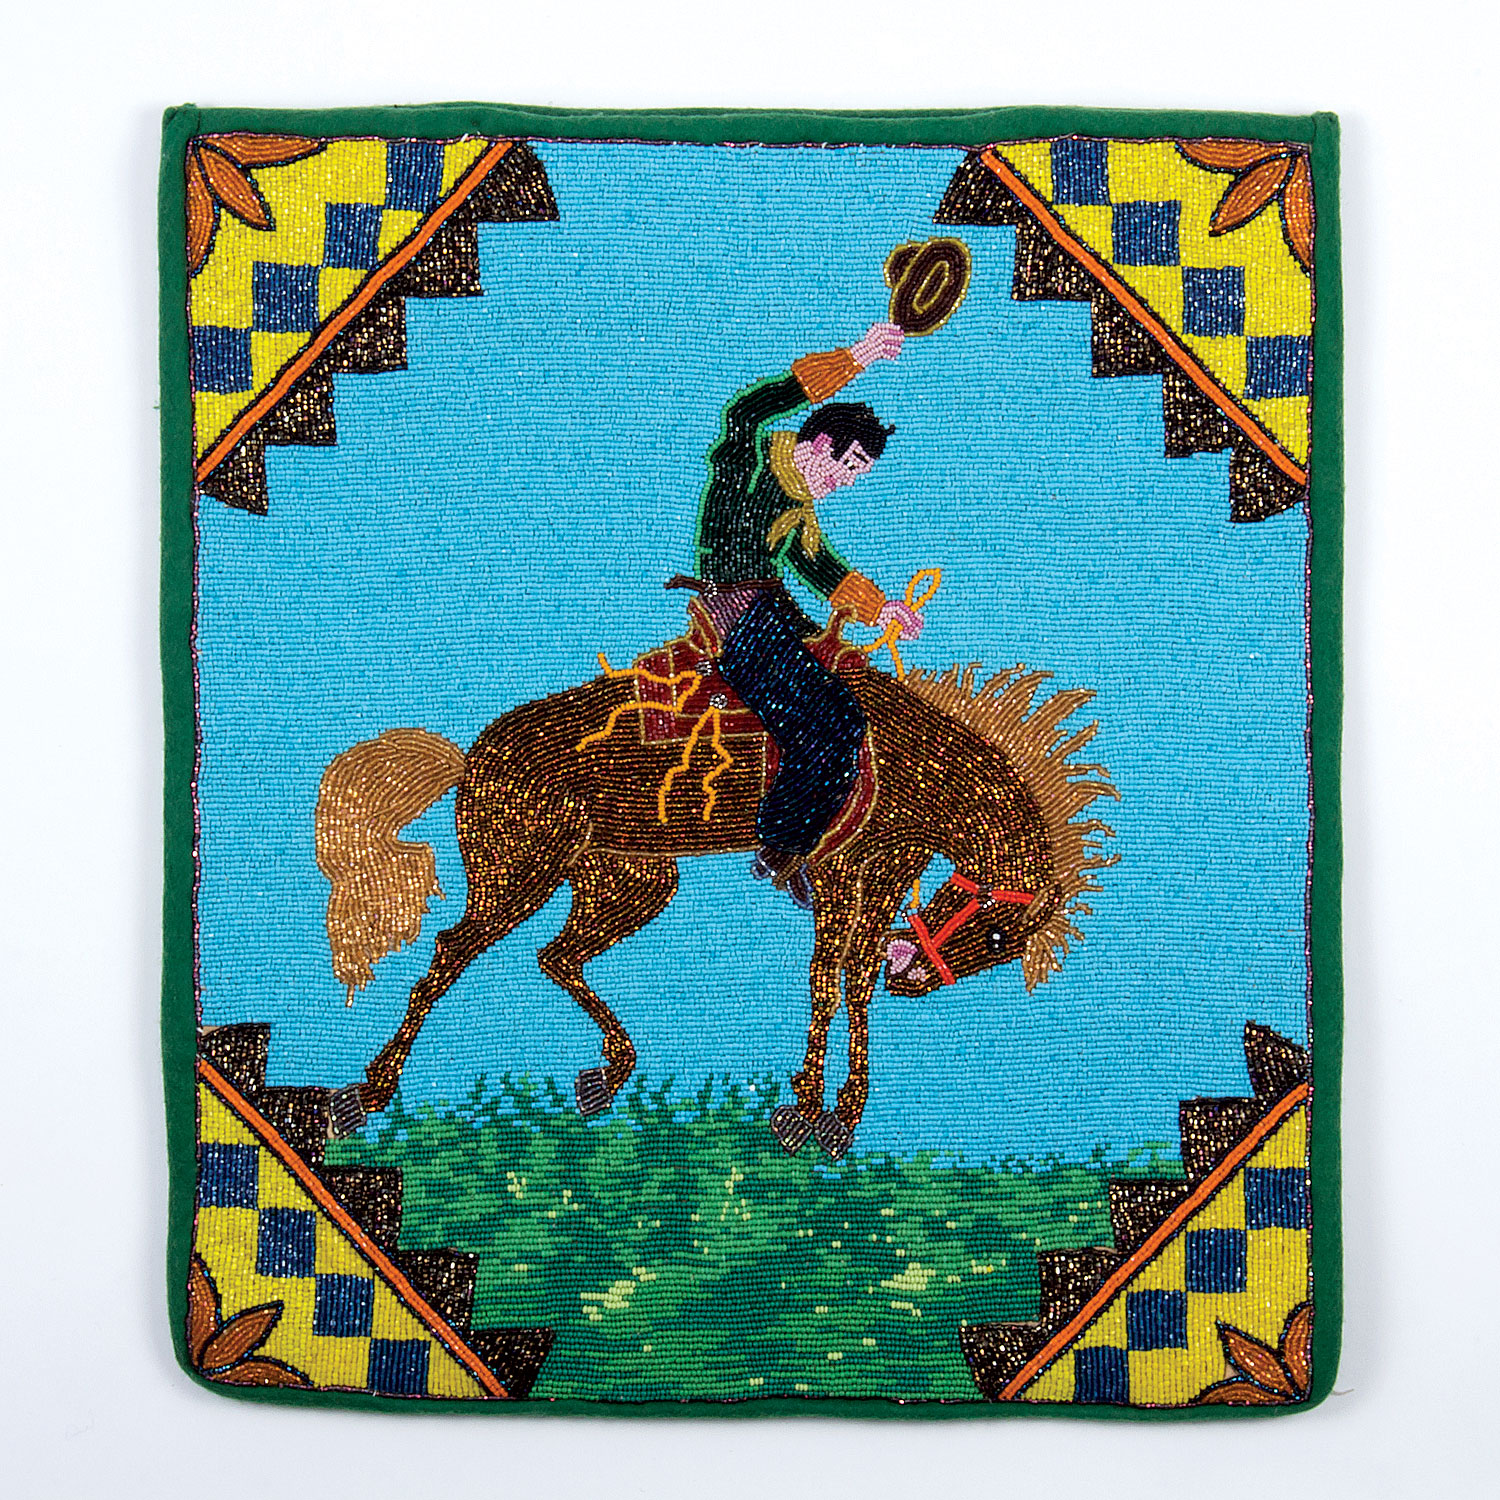 BRONC FLAT BAG by Plateau artist, 62.9 x 38.1 centimeters, circa 1930.  Private collection.